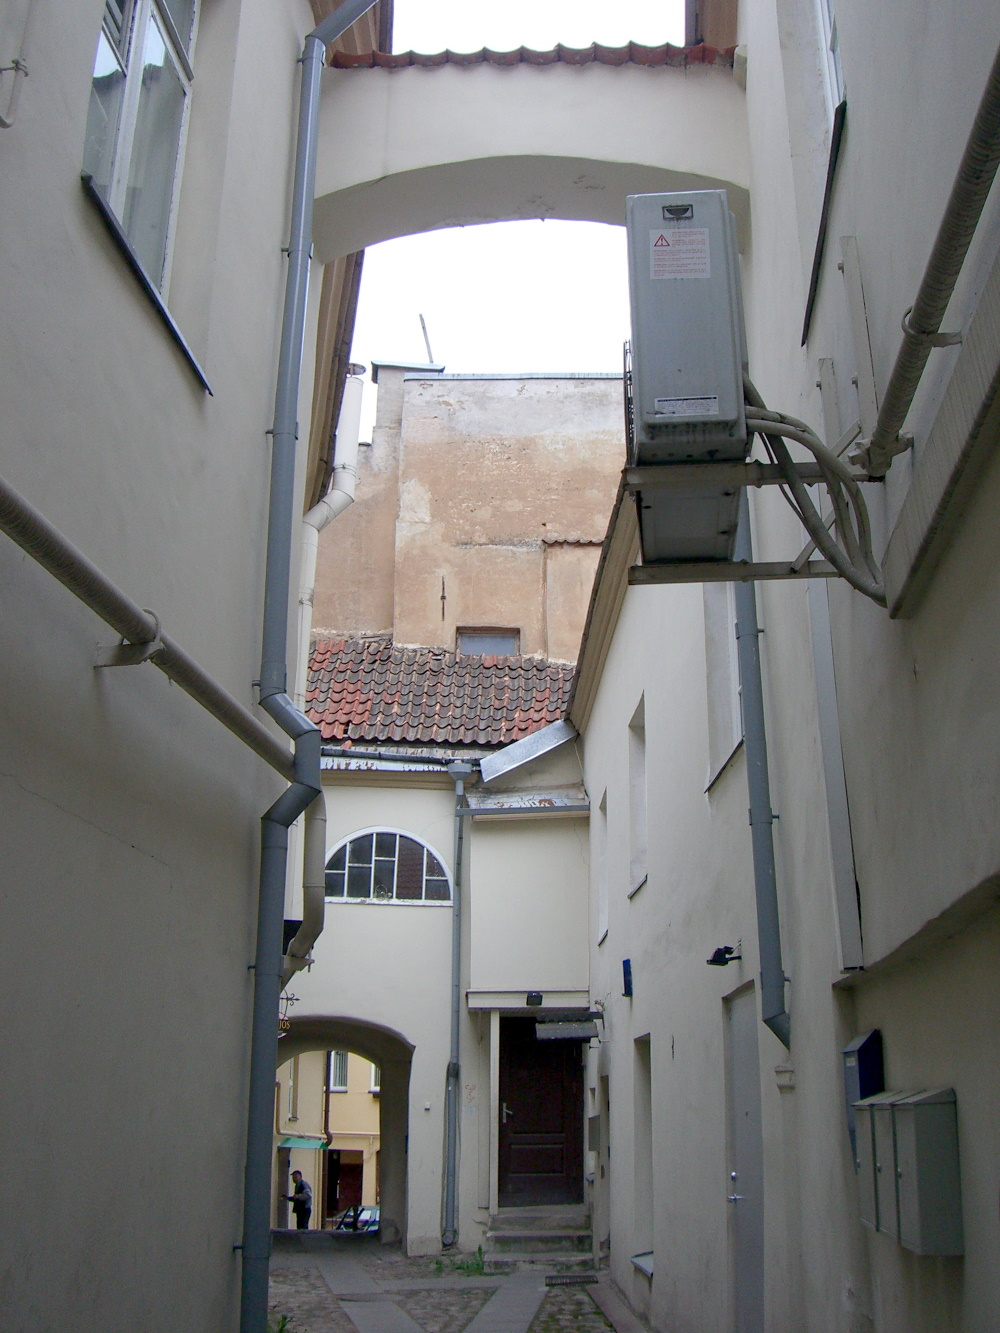 A narrow alley with multiple arches off of Pilies street